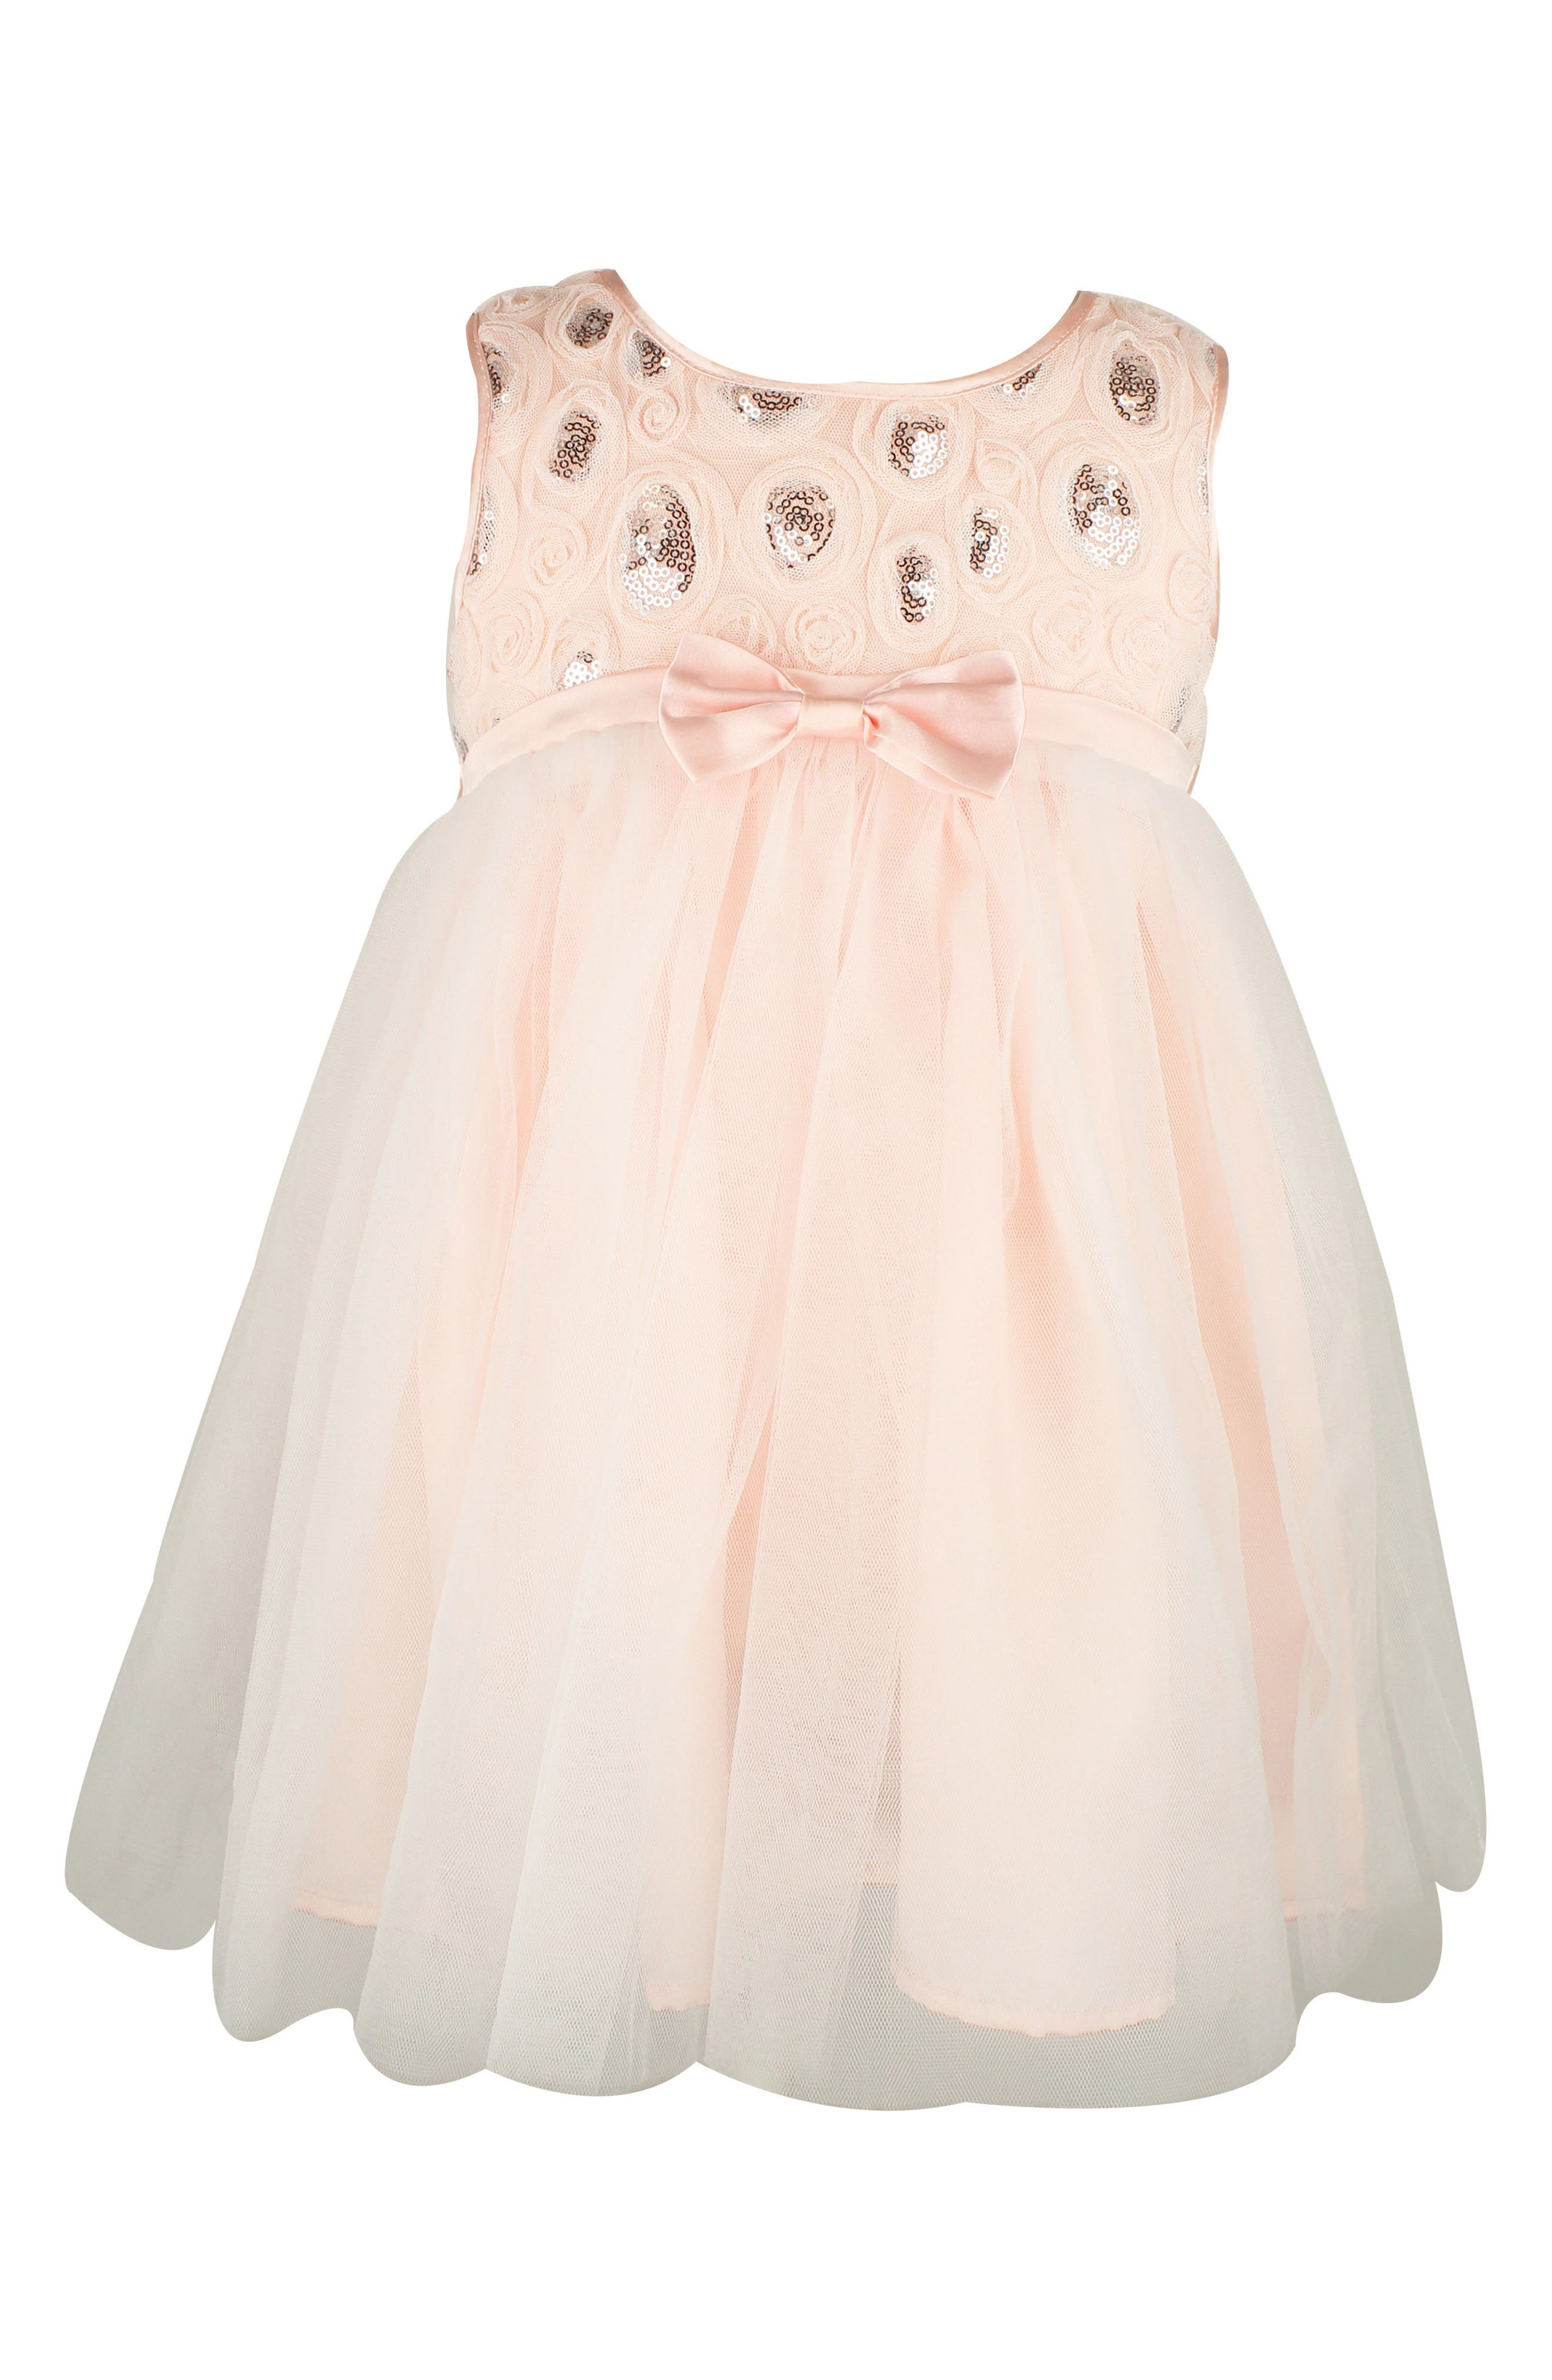 POPATU, Sequin Tulle Dress, Main thumbnail 1, color, PINK